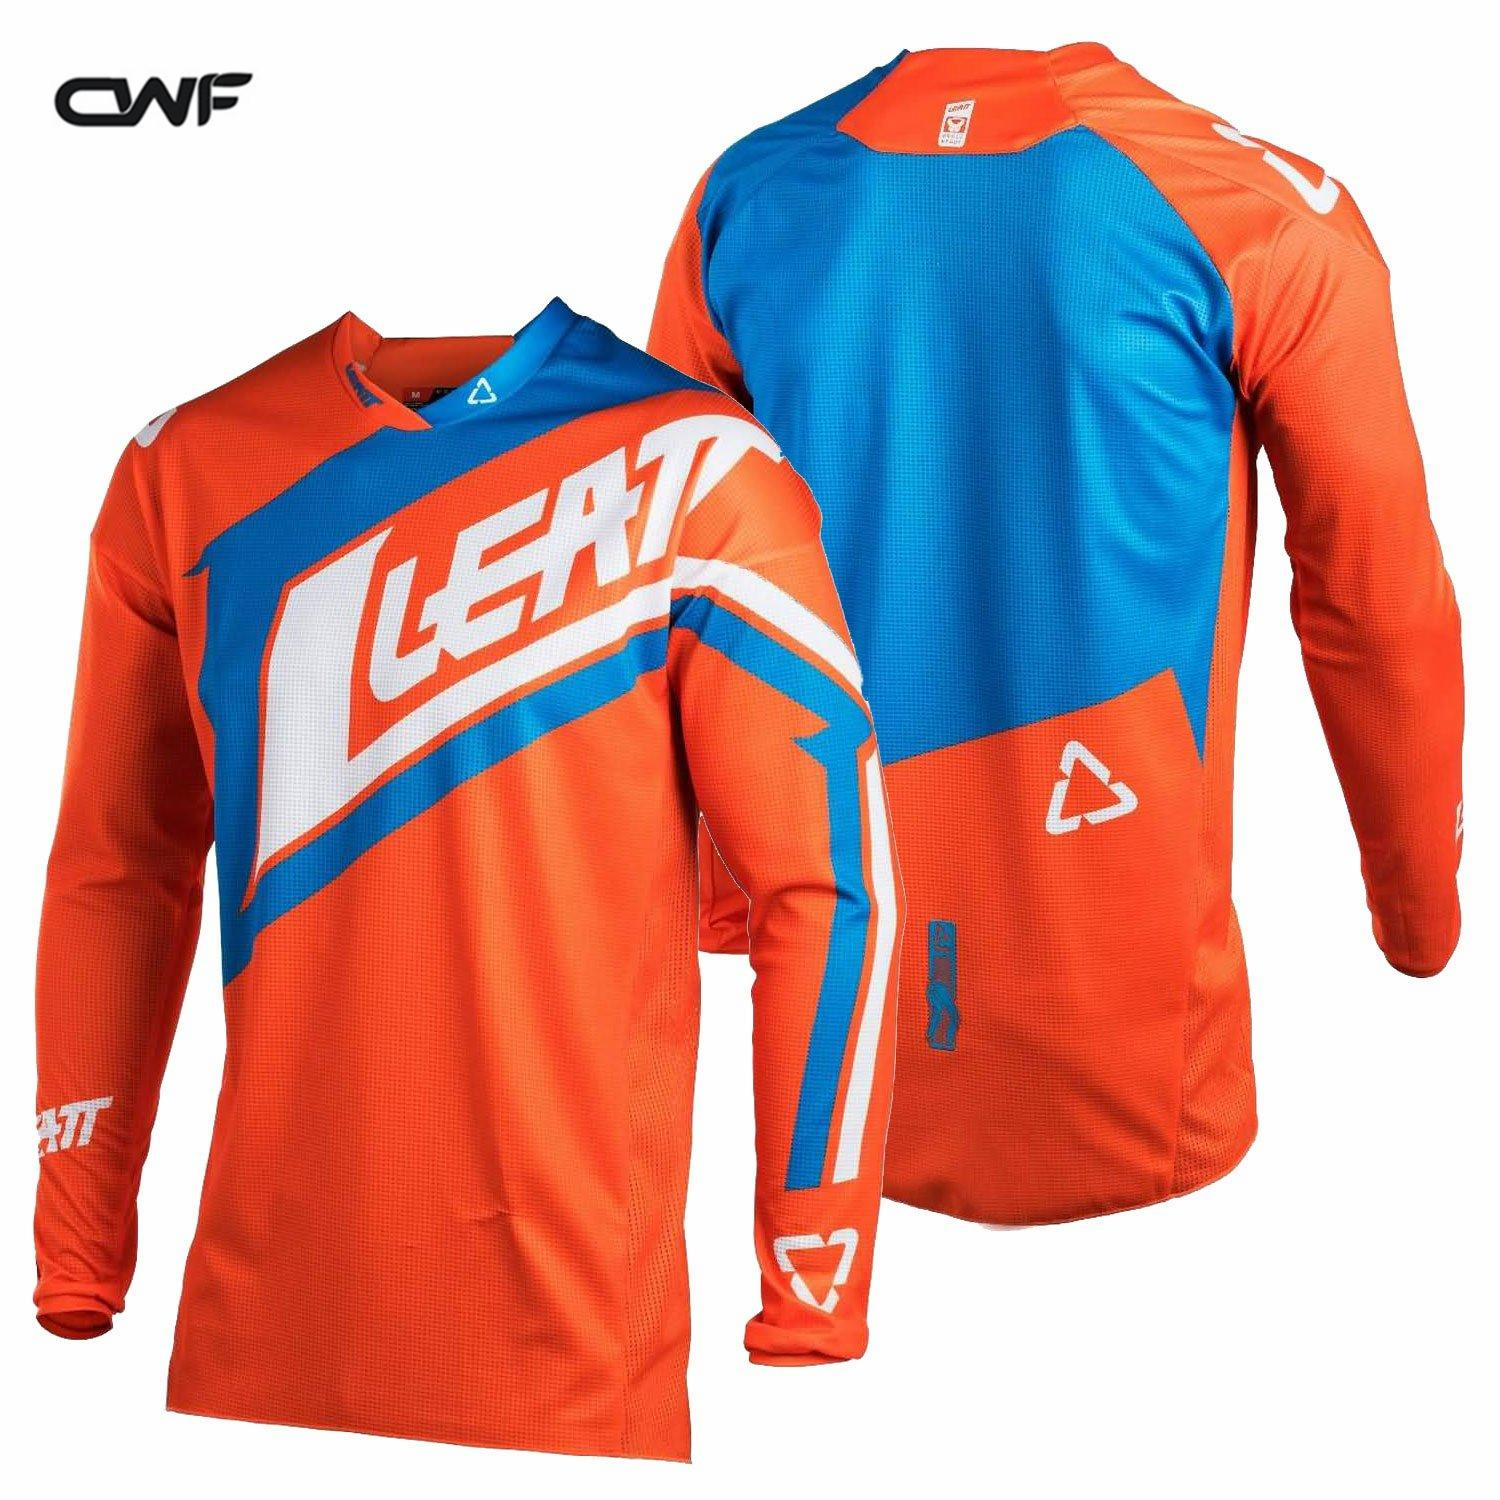 3STYLES Cycling Downhill Cycling Jerseys Custom Cycling DH Downhill Cycling BMX  Jerseys 2017 New Color Motorcycle Motocross Clothing Fox Motocross ... 500aabaf4